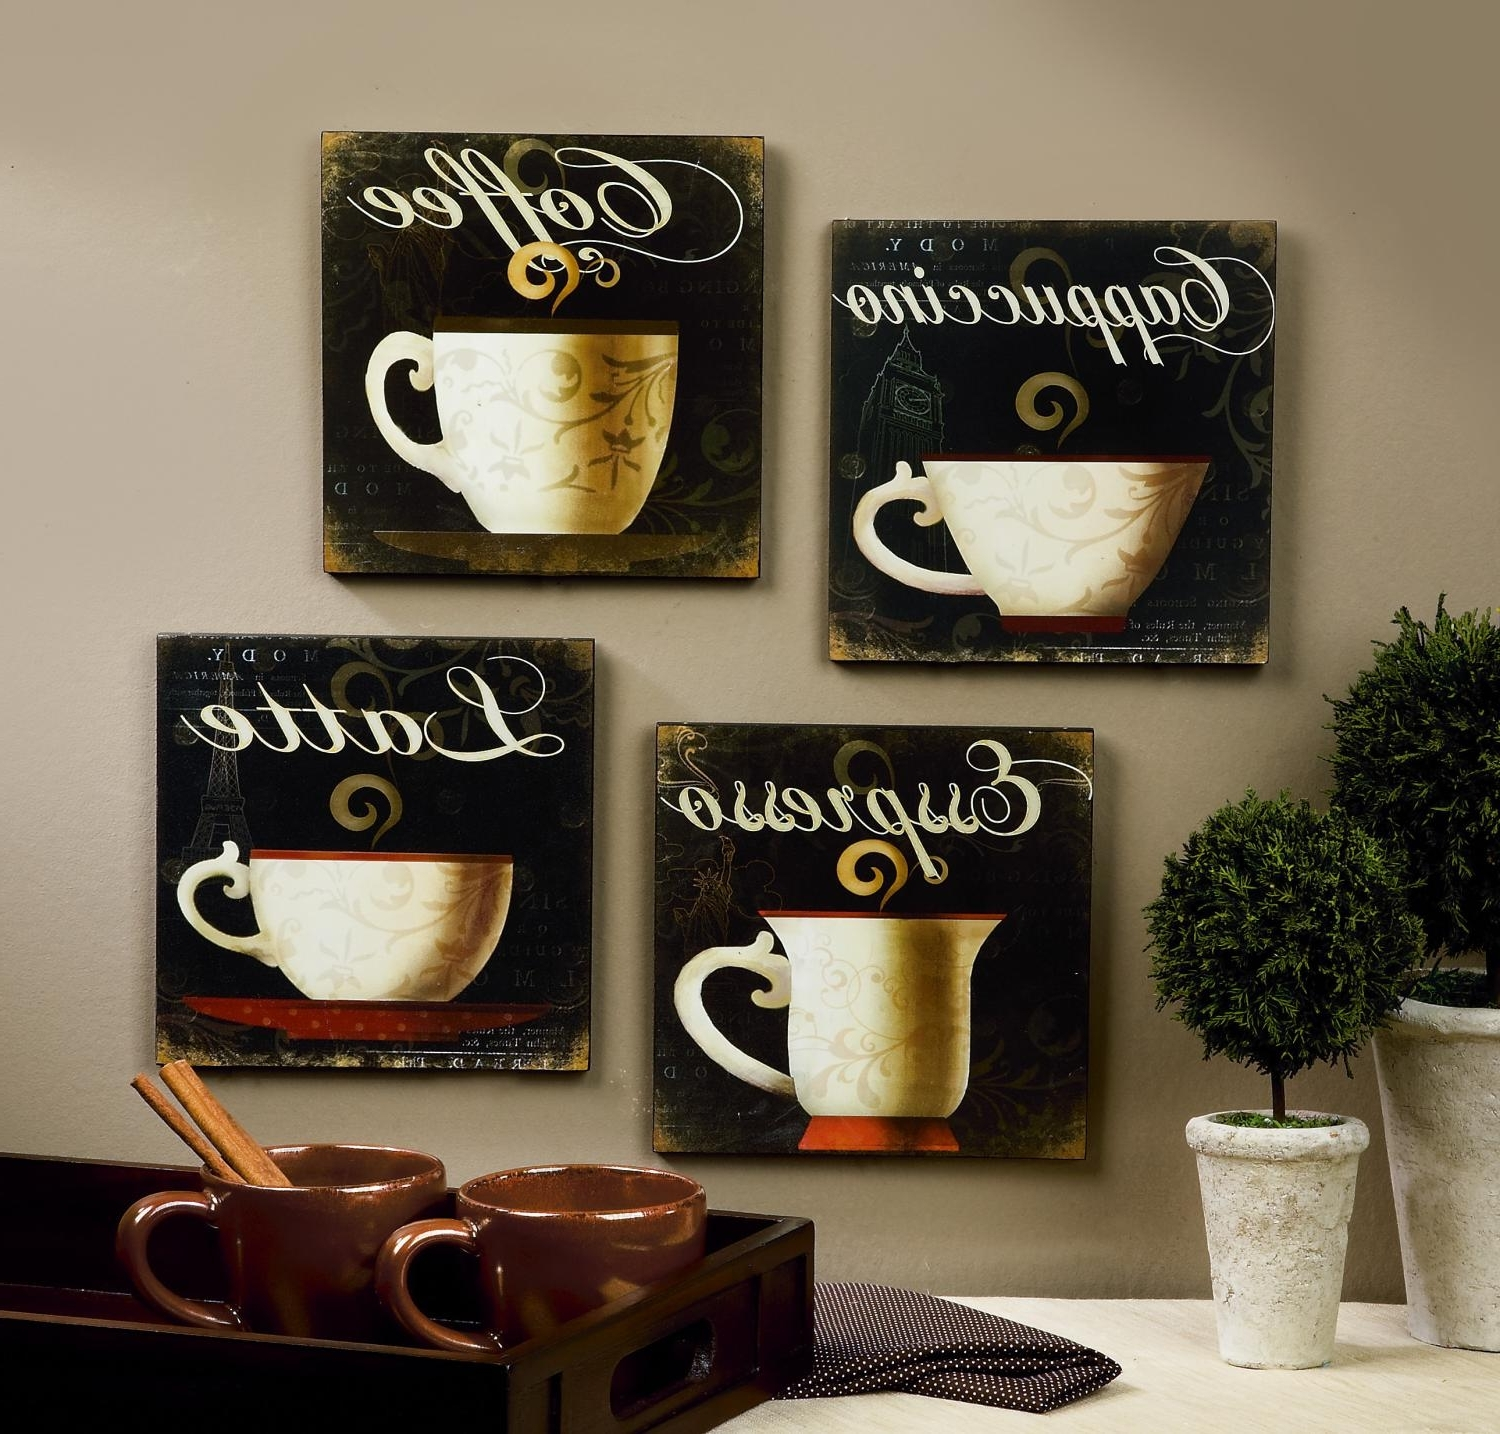 Adorable Kitchen Decorations For A Coffee Lover With Regard To Well Known Framed Coffee Art Prints (View 1 of 15)